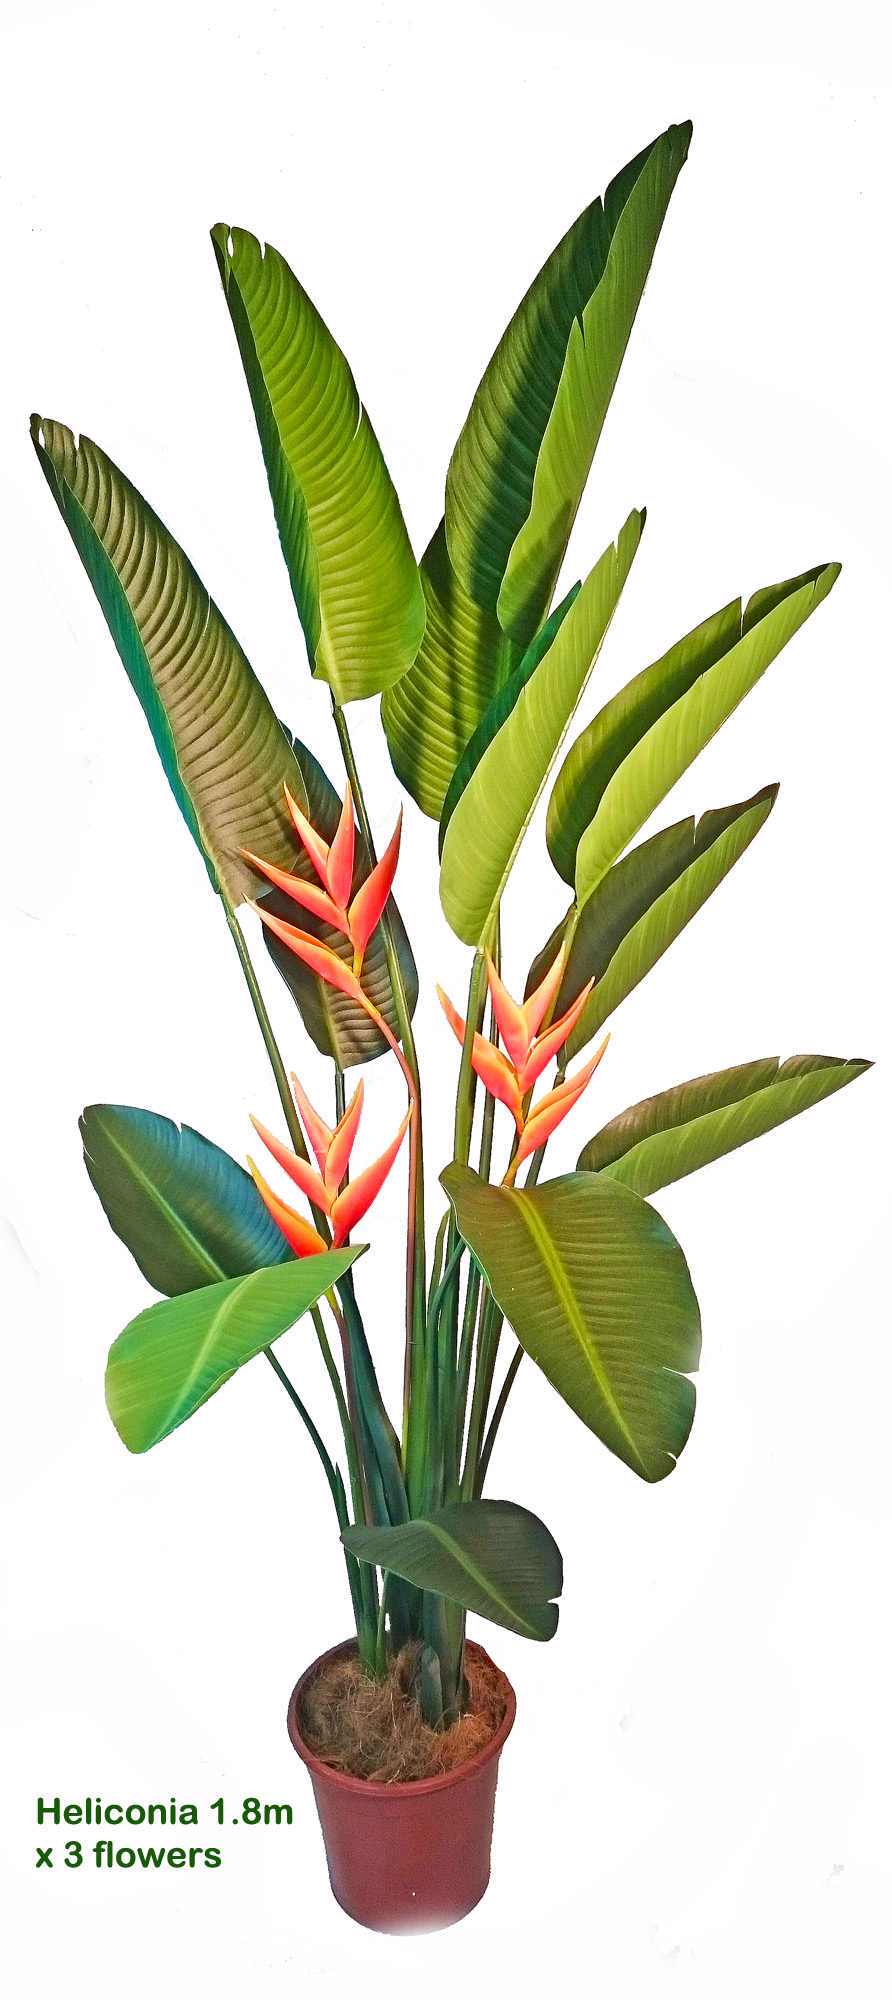 Articial Plants - Heliconia Palms- Flowering 1.6m with 2 flowers